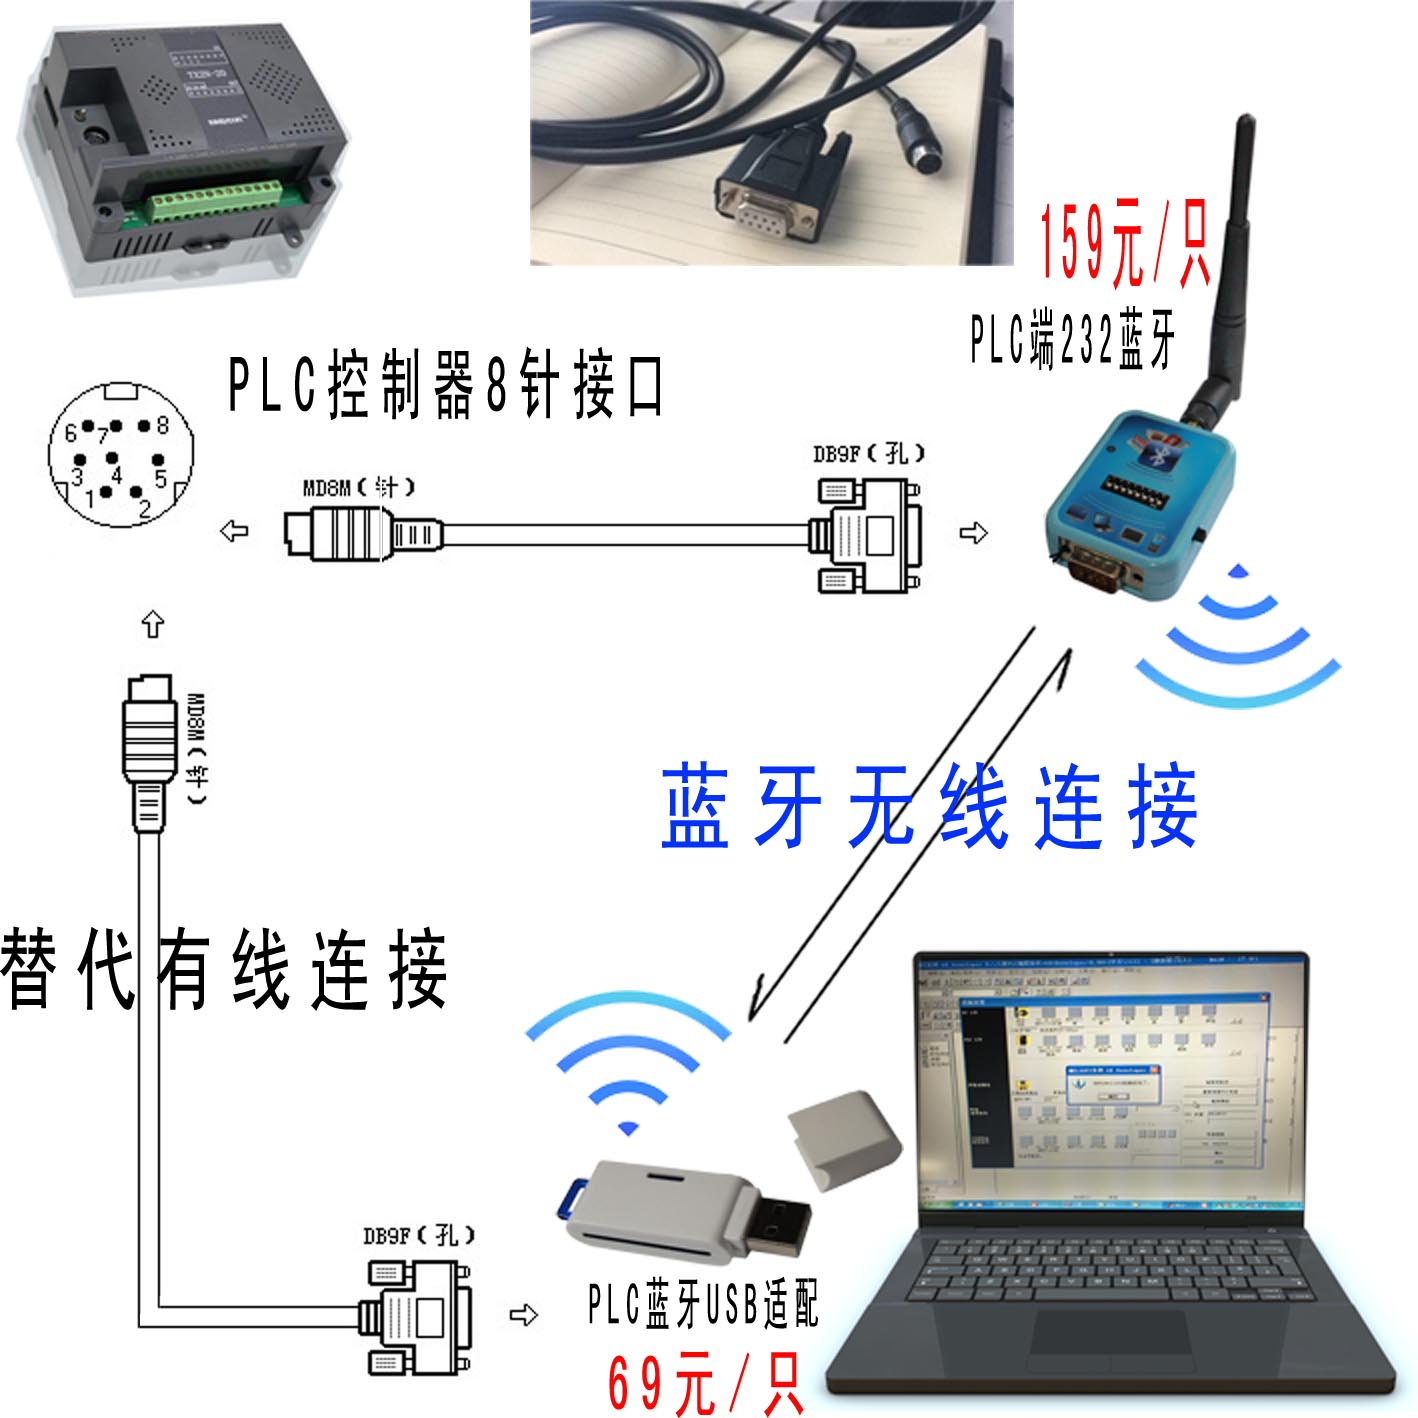 Bluetooth USB serial port wireless PLC controller wireless PLC Bluetooth  serial port adapter upgrade support Android OTG